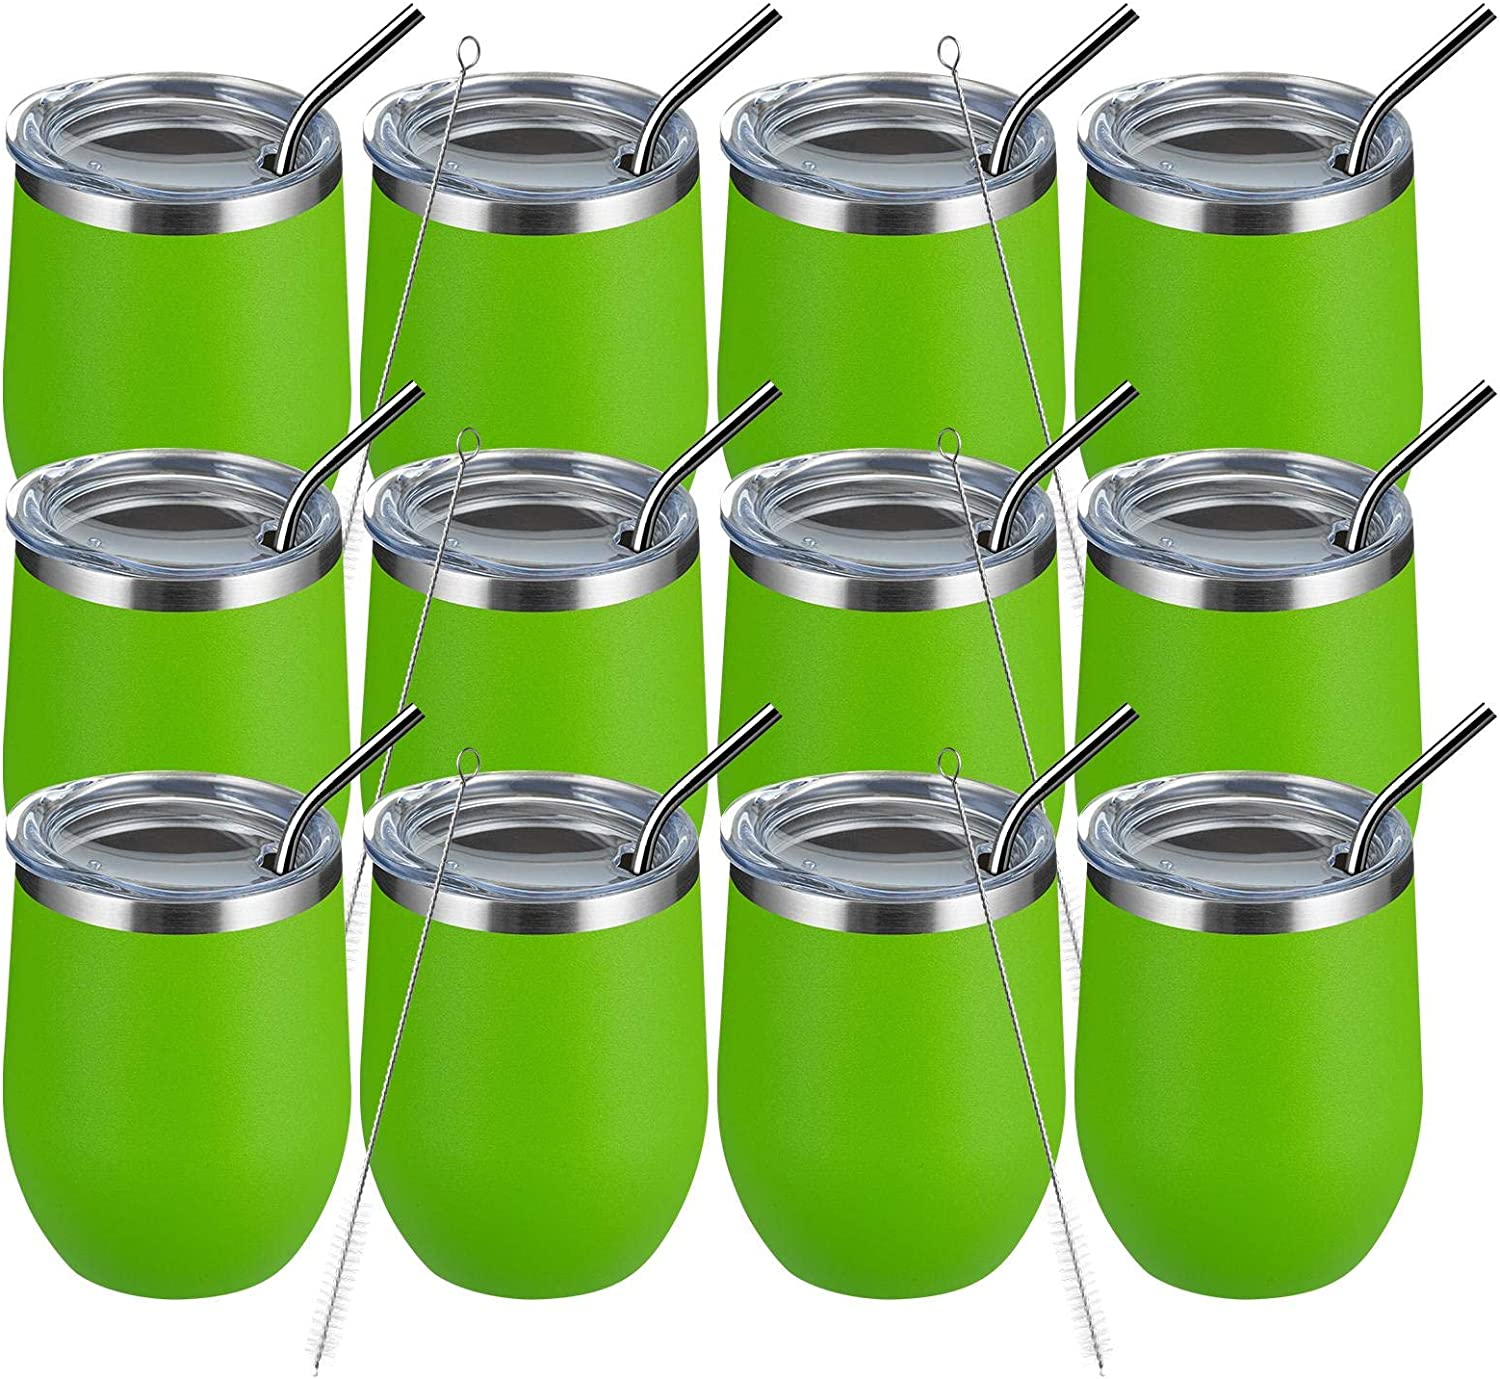 MEWAY 12oz 12 Pack Wine Max 45% OFF Tumbler Va Popular product with Lid Glasses -Double Wall